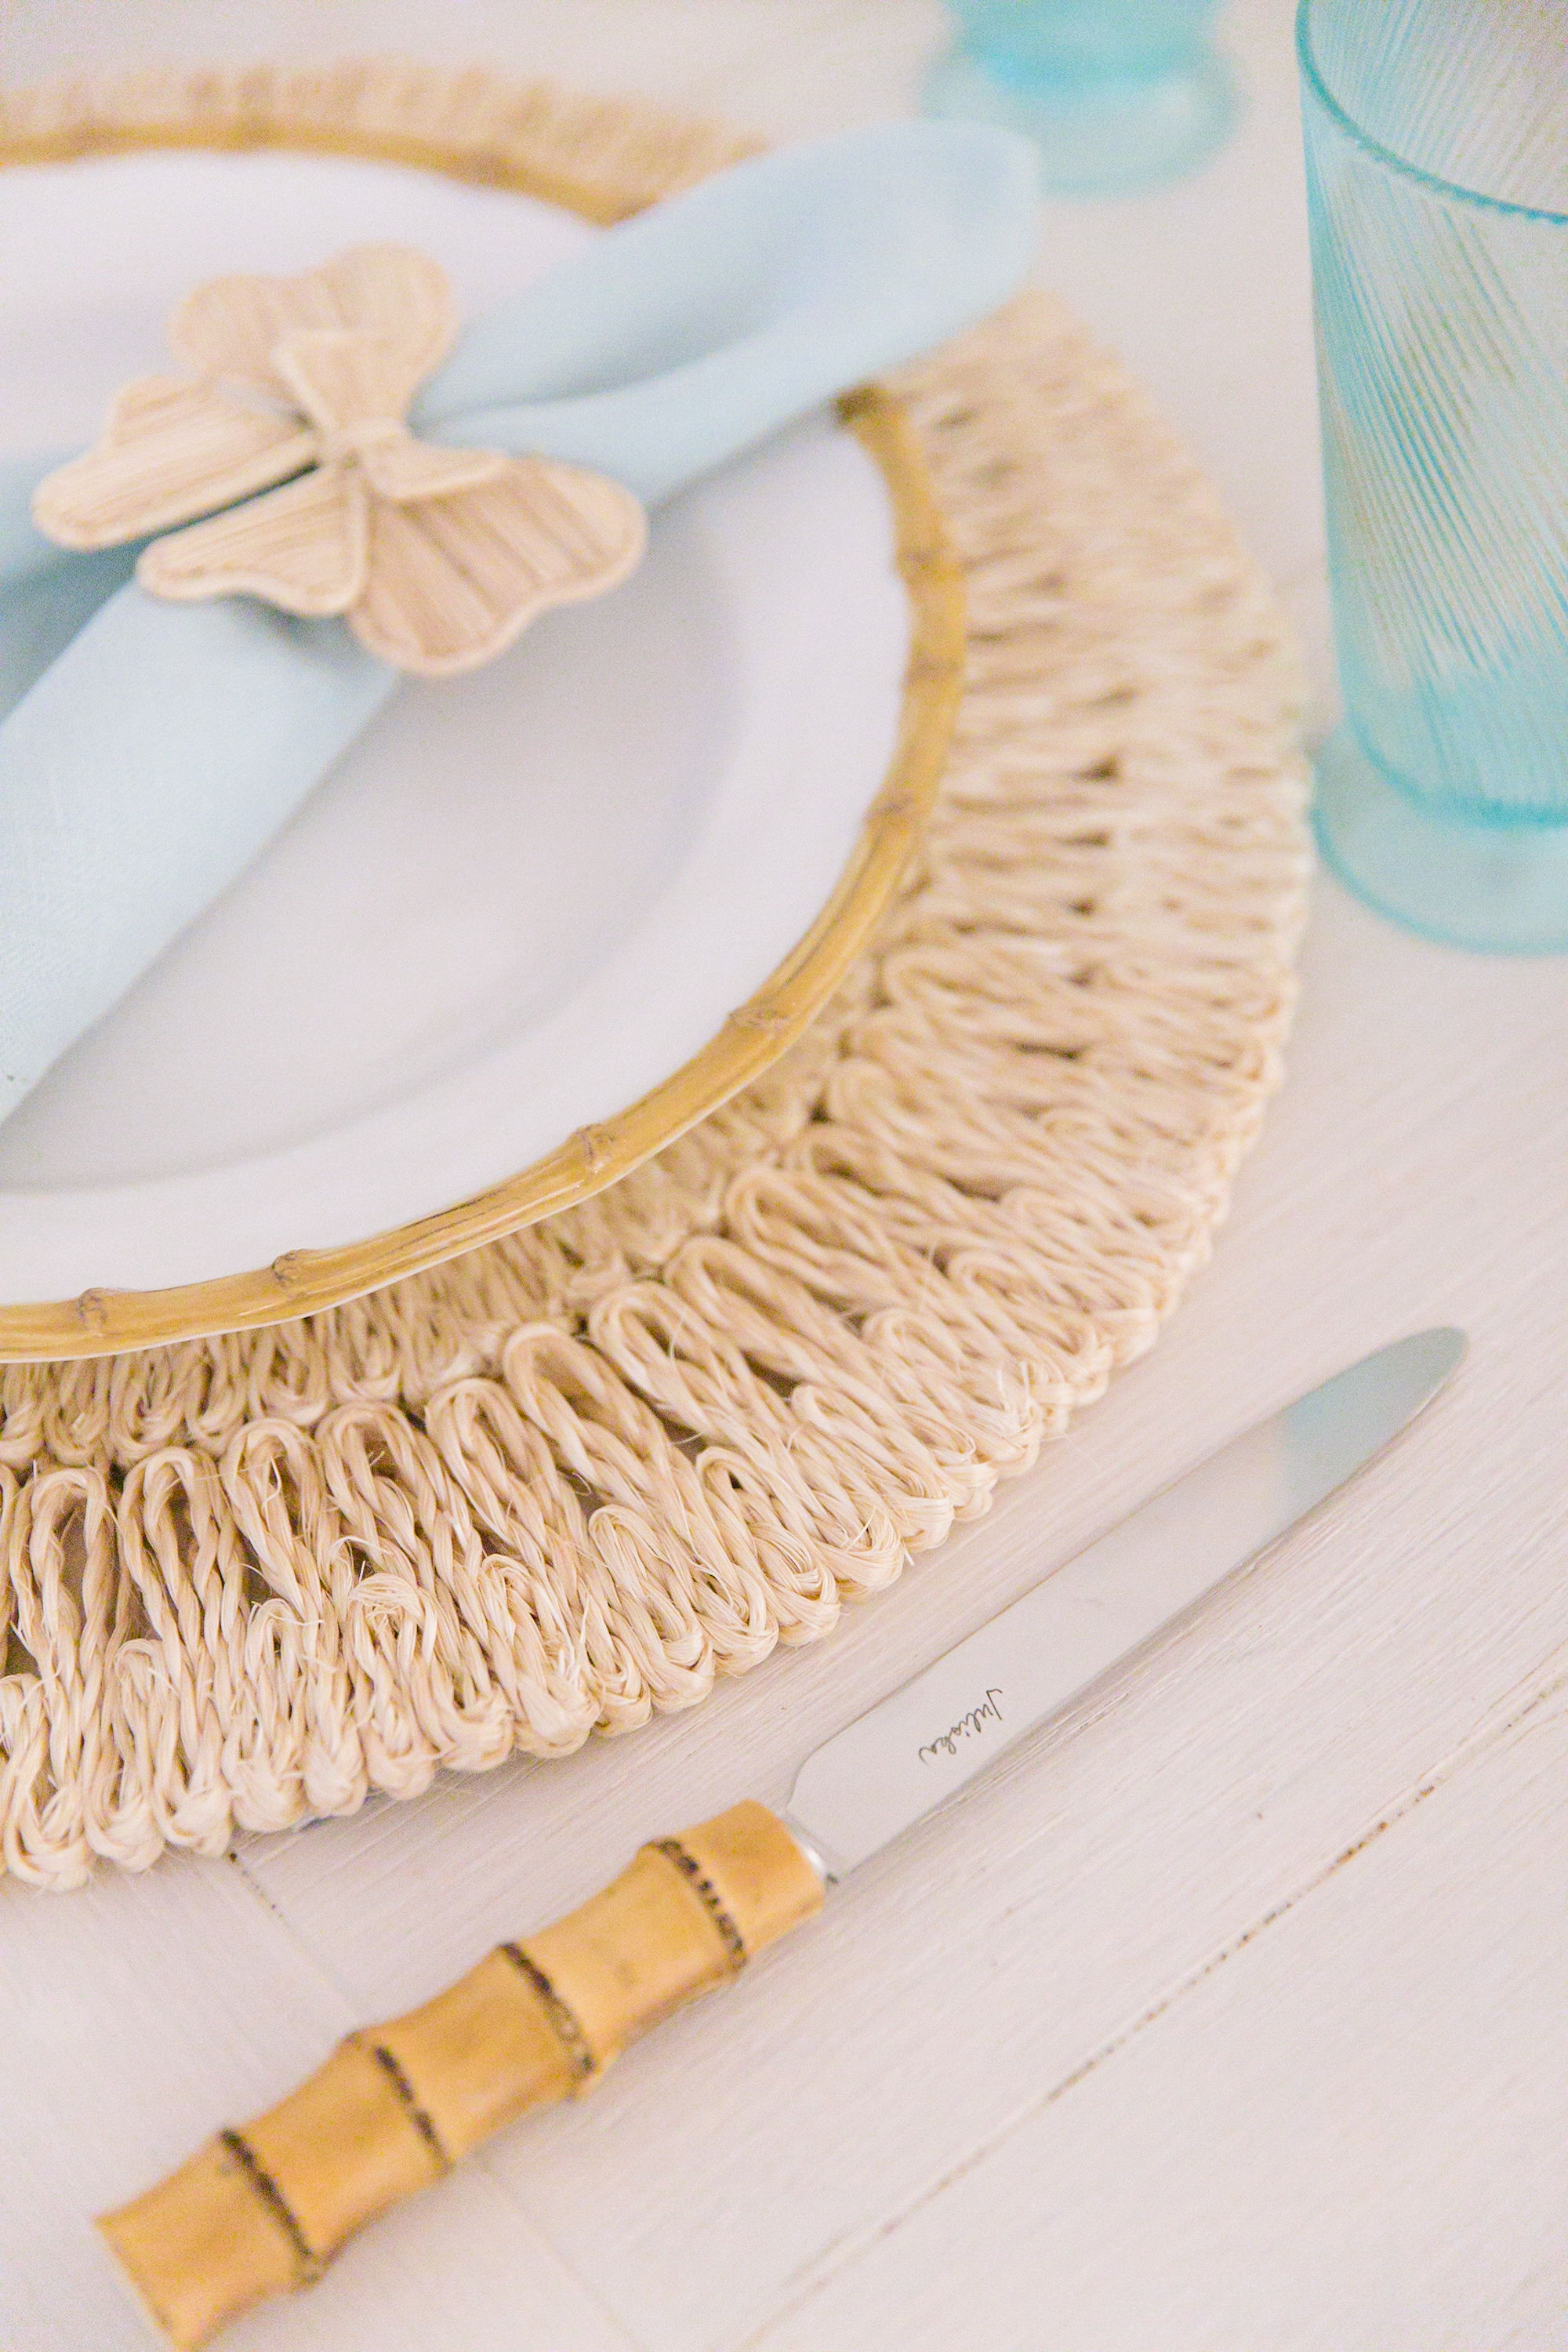 Bamboo plates and flatware